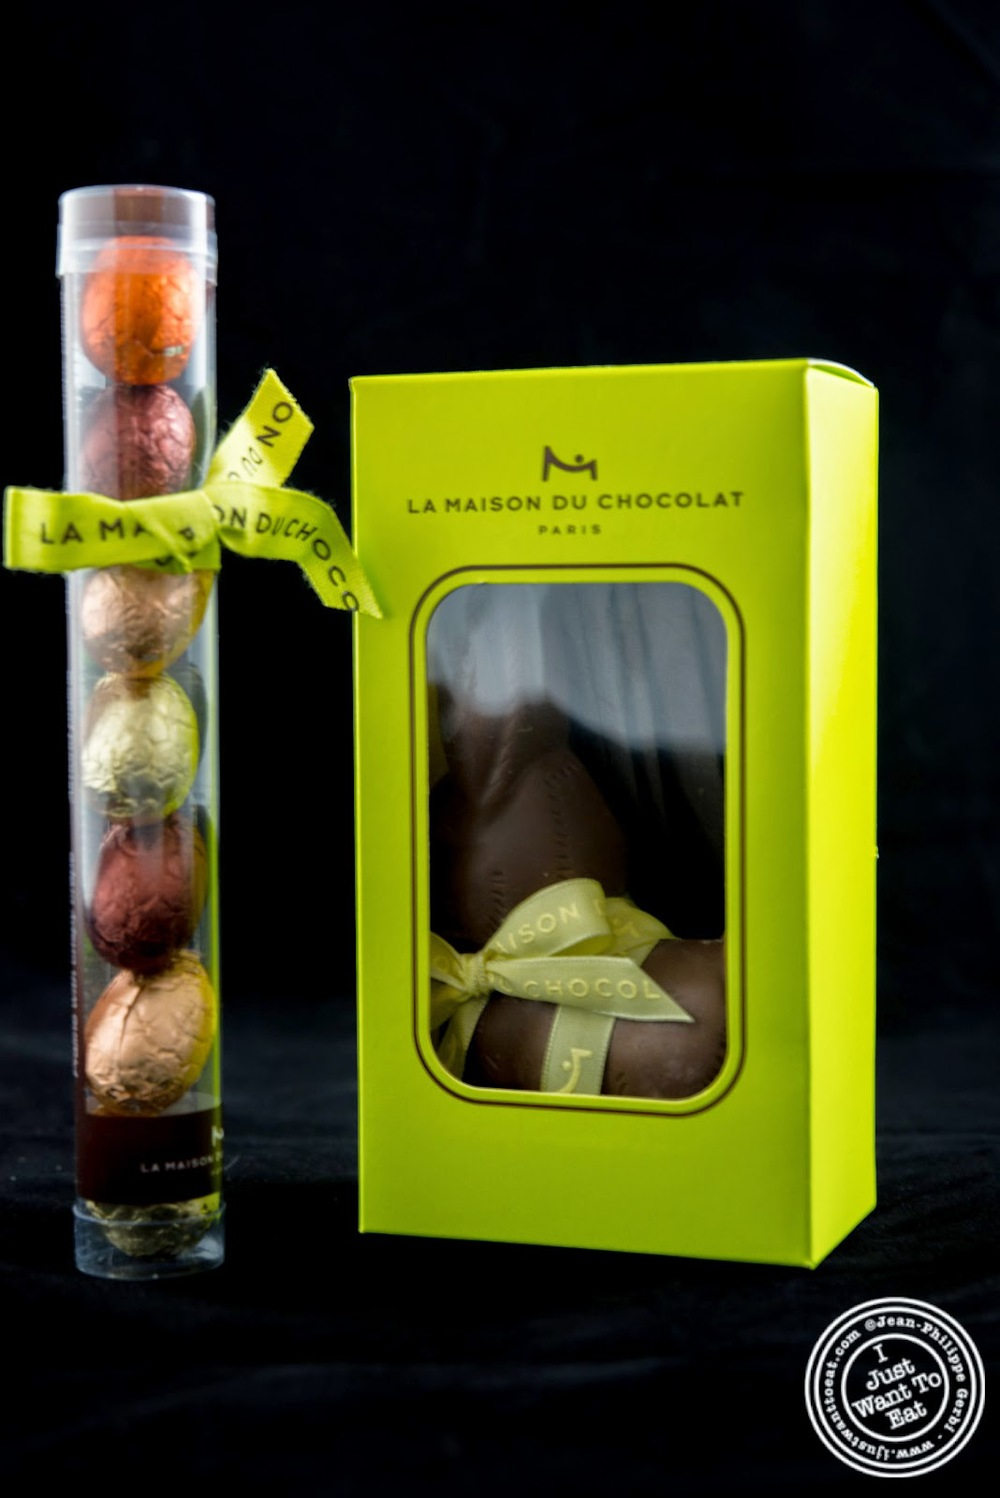 image of La Maison du Chocolat Easter chocolate